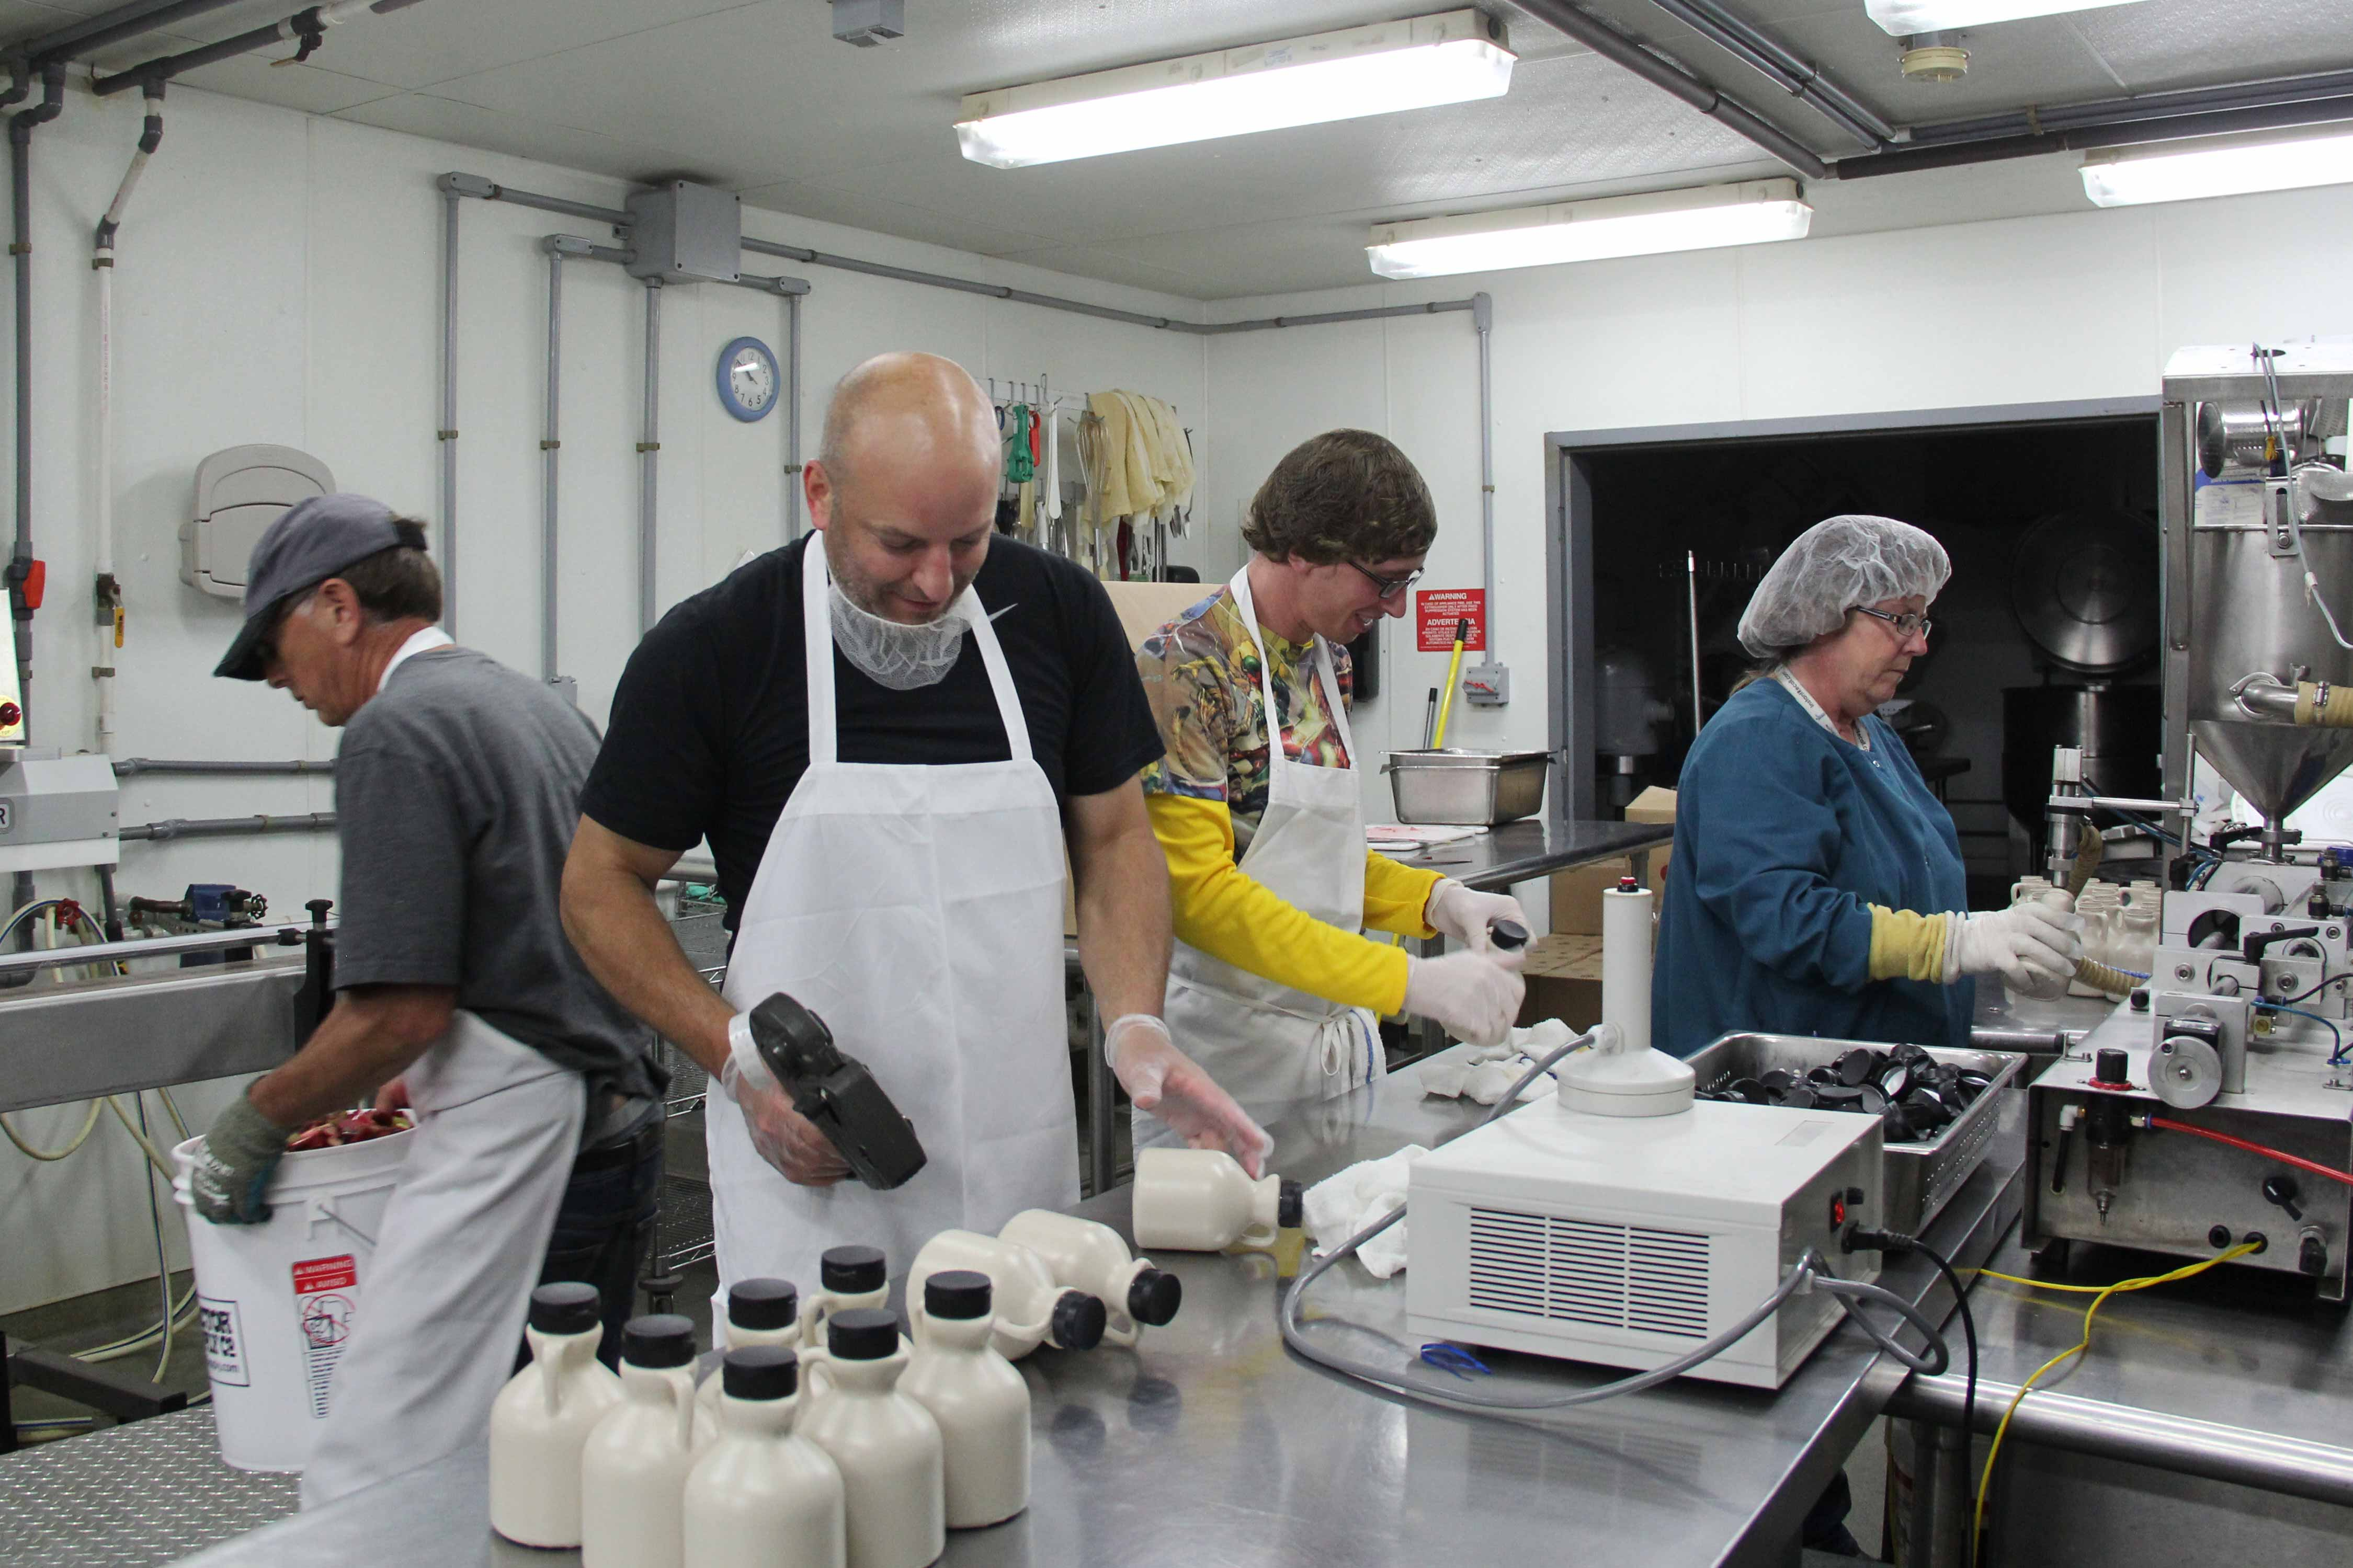 Photo of three men and one woman working together in the kitchen.